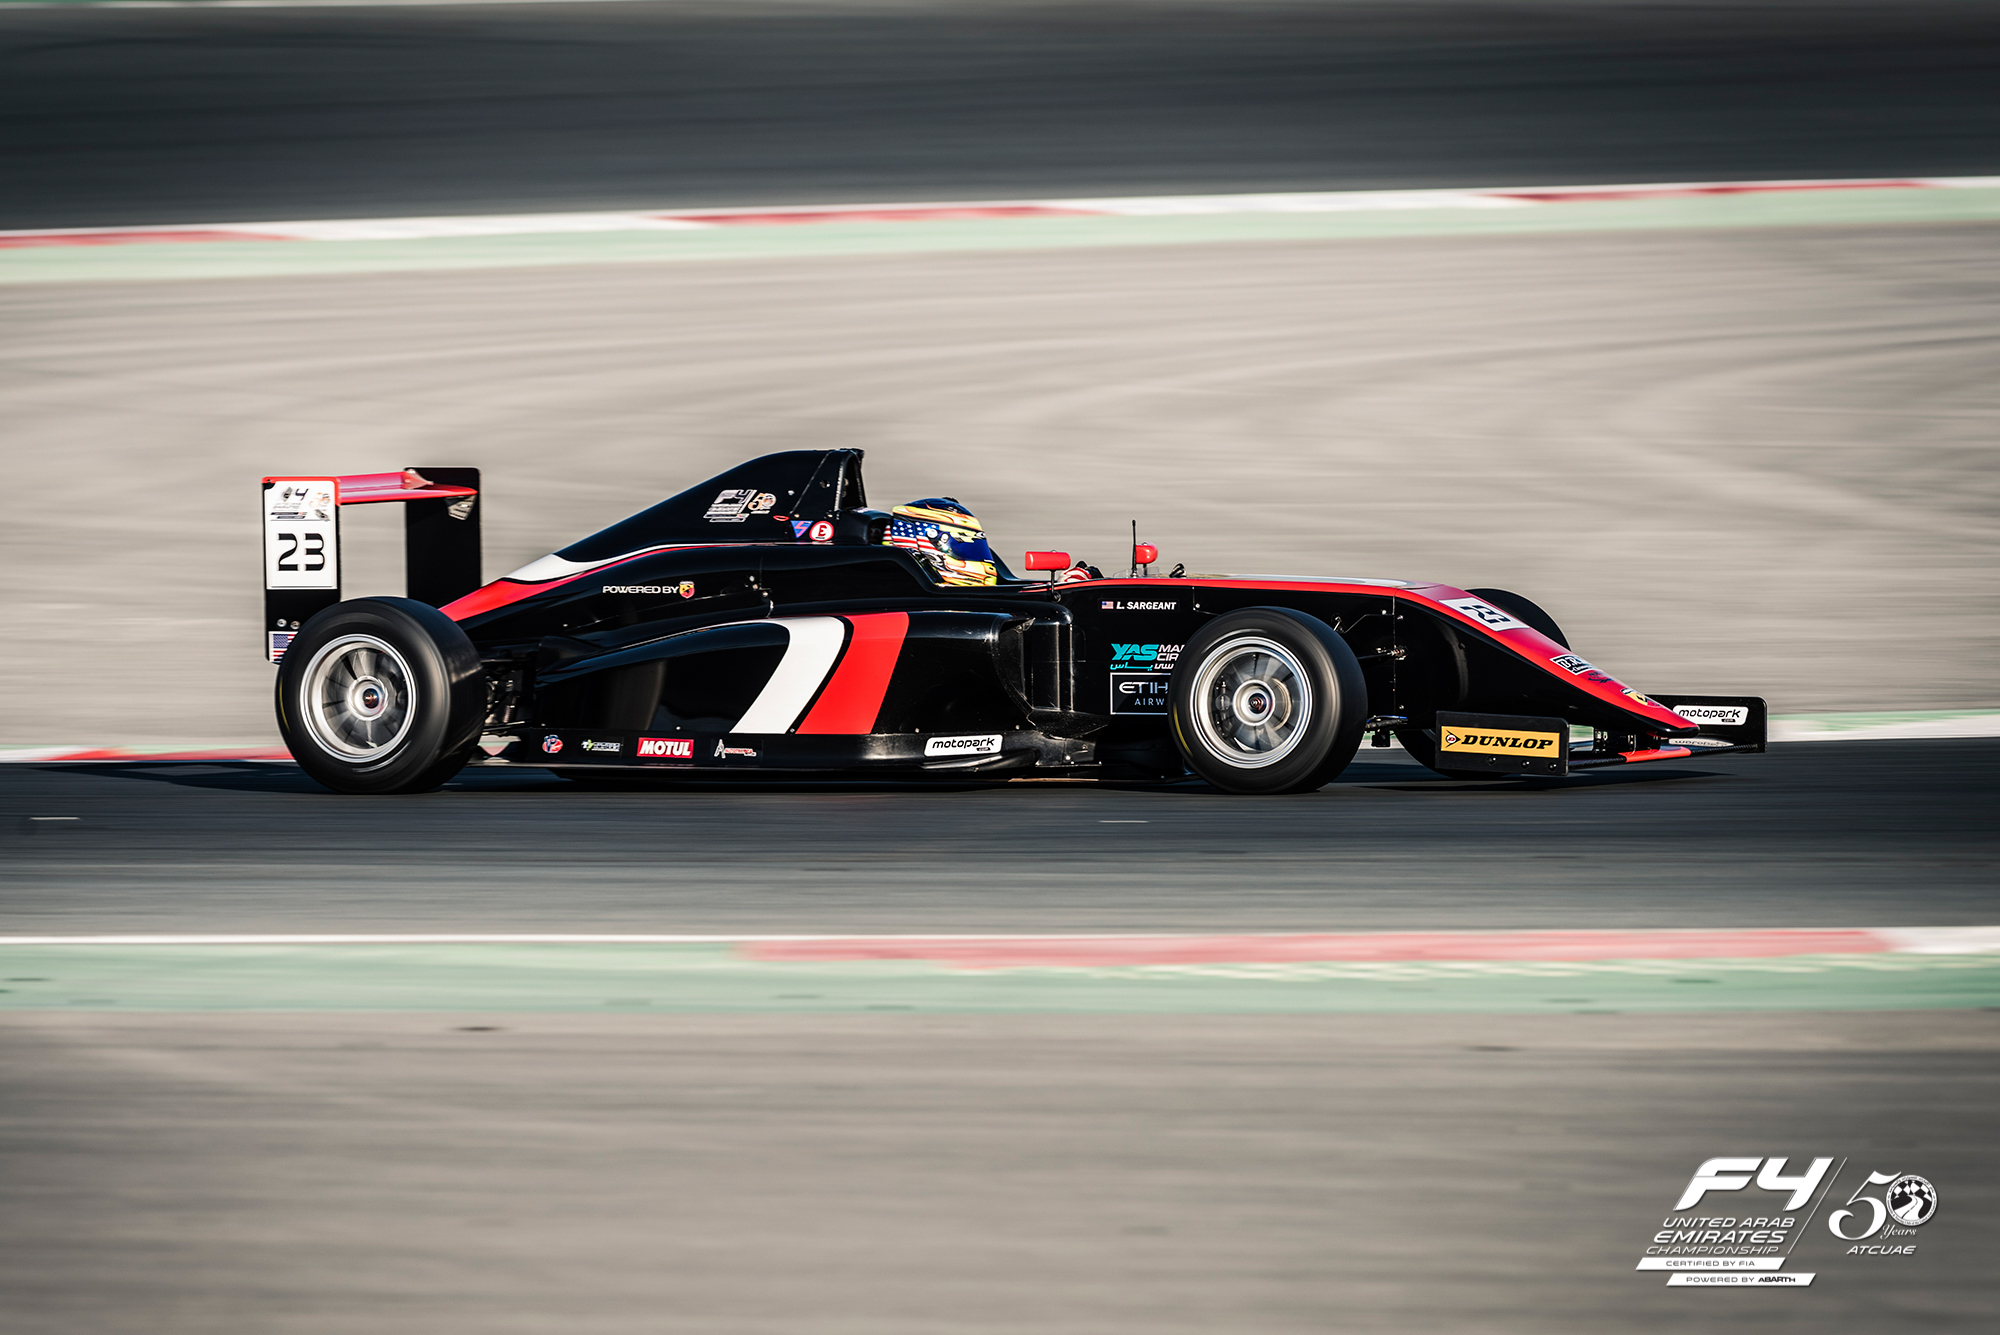 2016 10 30   Racing   Second Round   F4   Dubai    4 Of 34